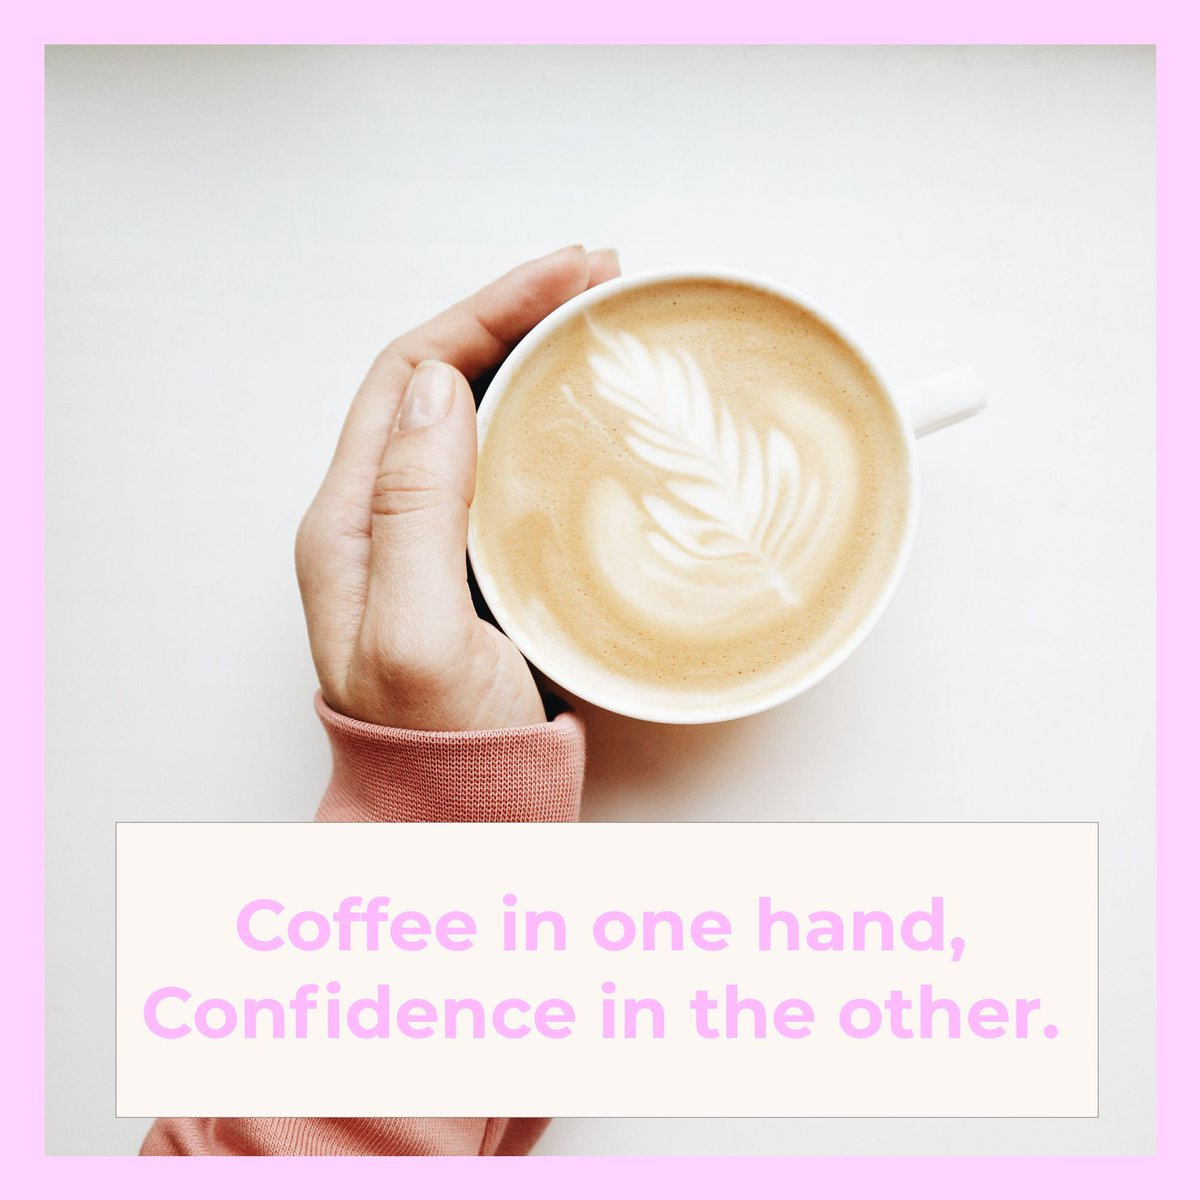 Yes!  Tuesday morning be like...  Virtual drive through coffee - what is your standard coffee order? #coffee #coffeelovers #CoffeeTalk #CoffeeTalk #morningcoffee #nzbusiness #forthegirls #nzwomen #selfconfidence #selflove #wellbeing #TuesdayMorningpic.twitter.com/8Kh7RbkVoY